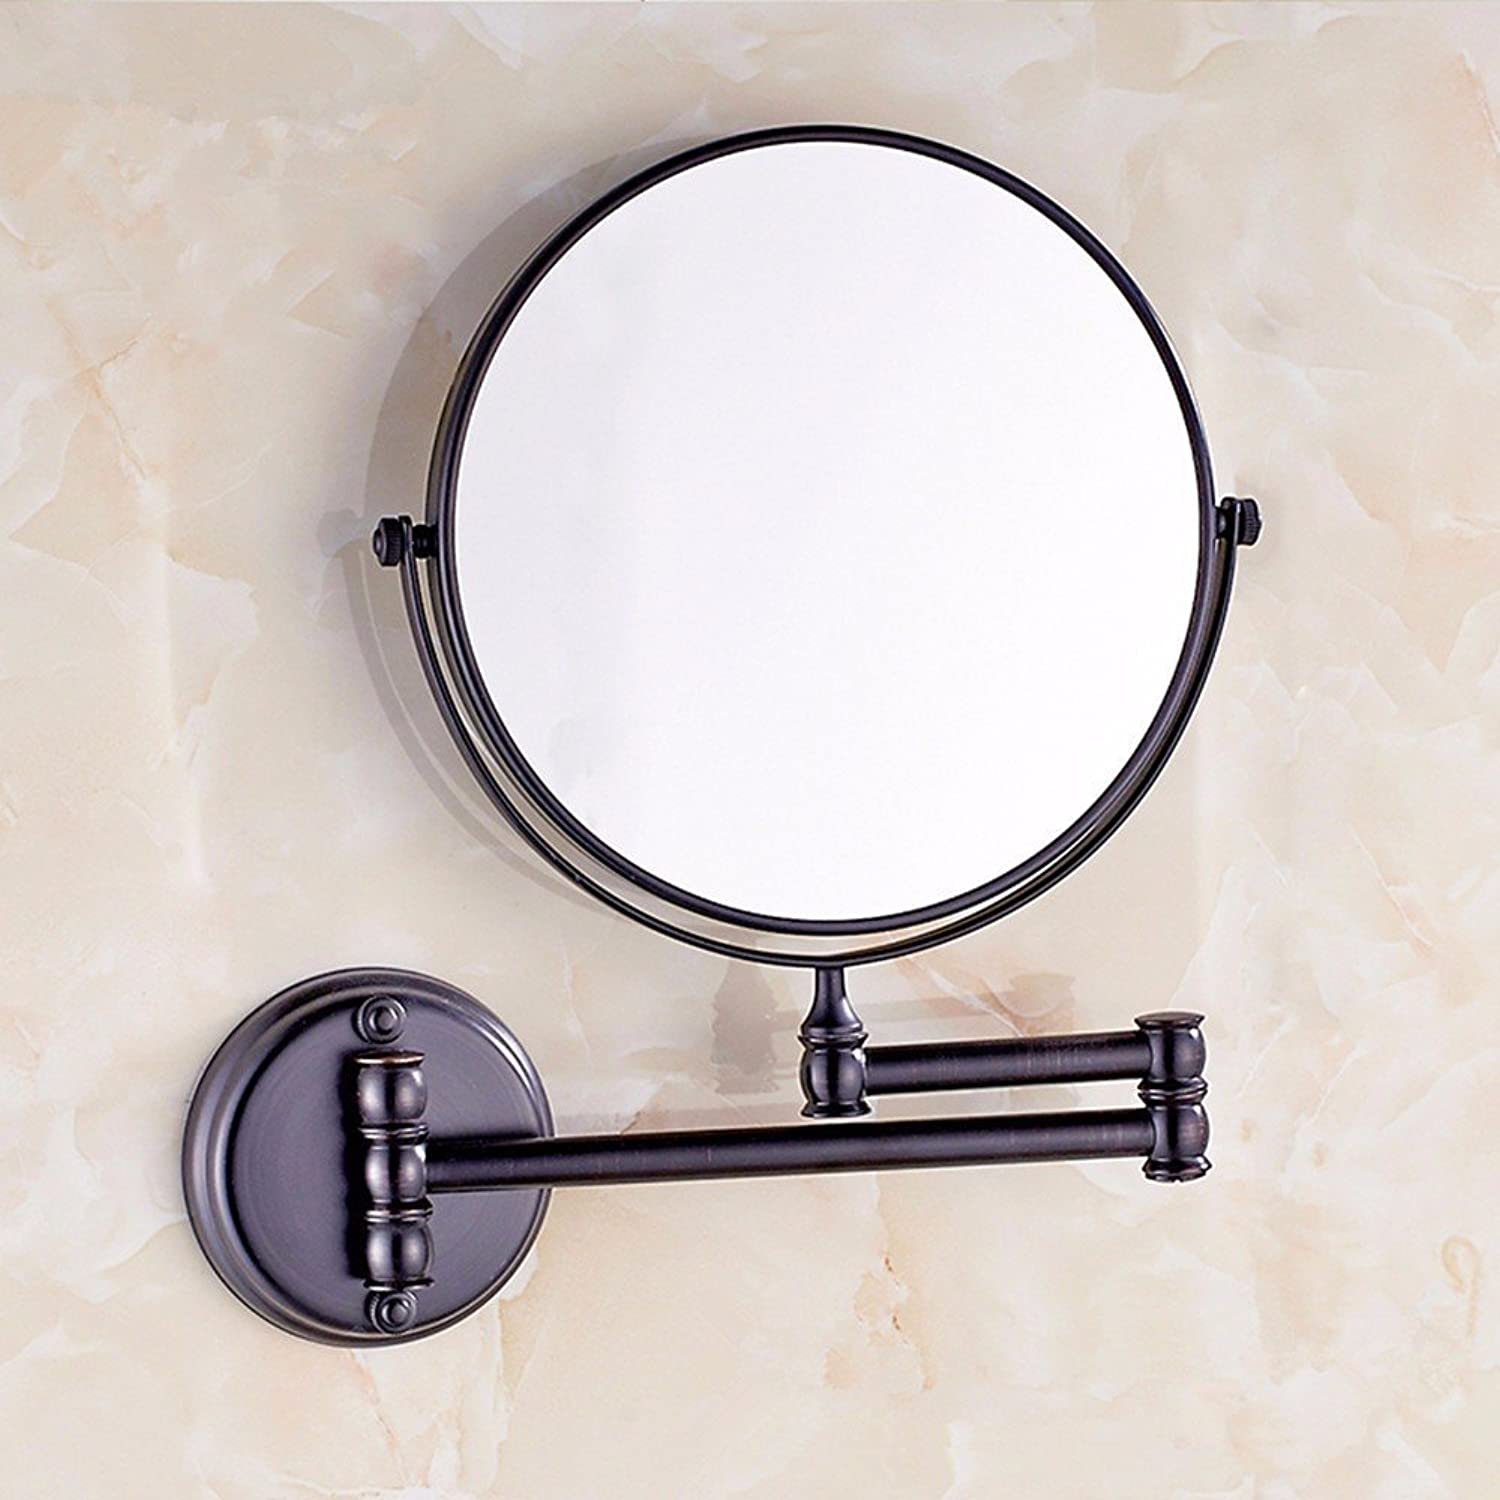 Antique copper bathroom wall mount makeup mirror folding mirror toilet telescopic mirror double sided magnification mirror 8-inch Black wall mount mirror